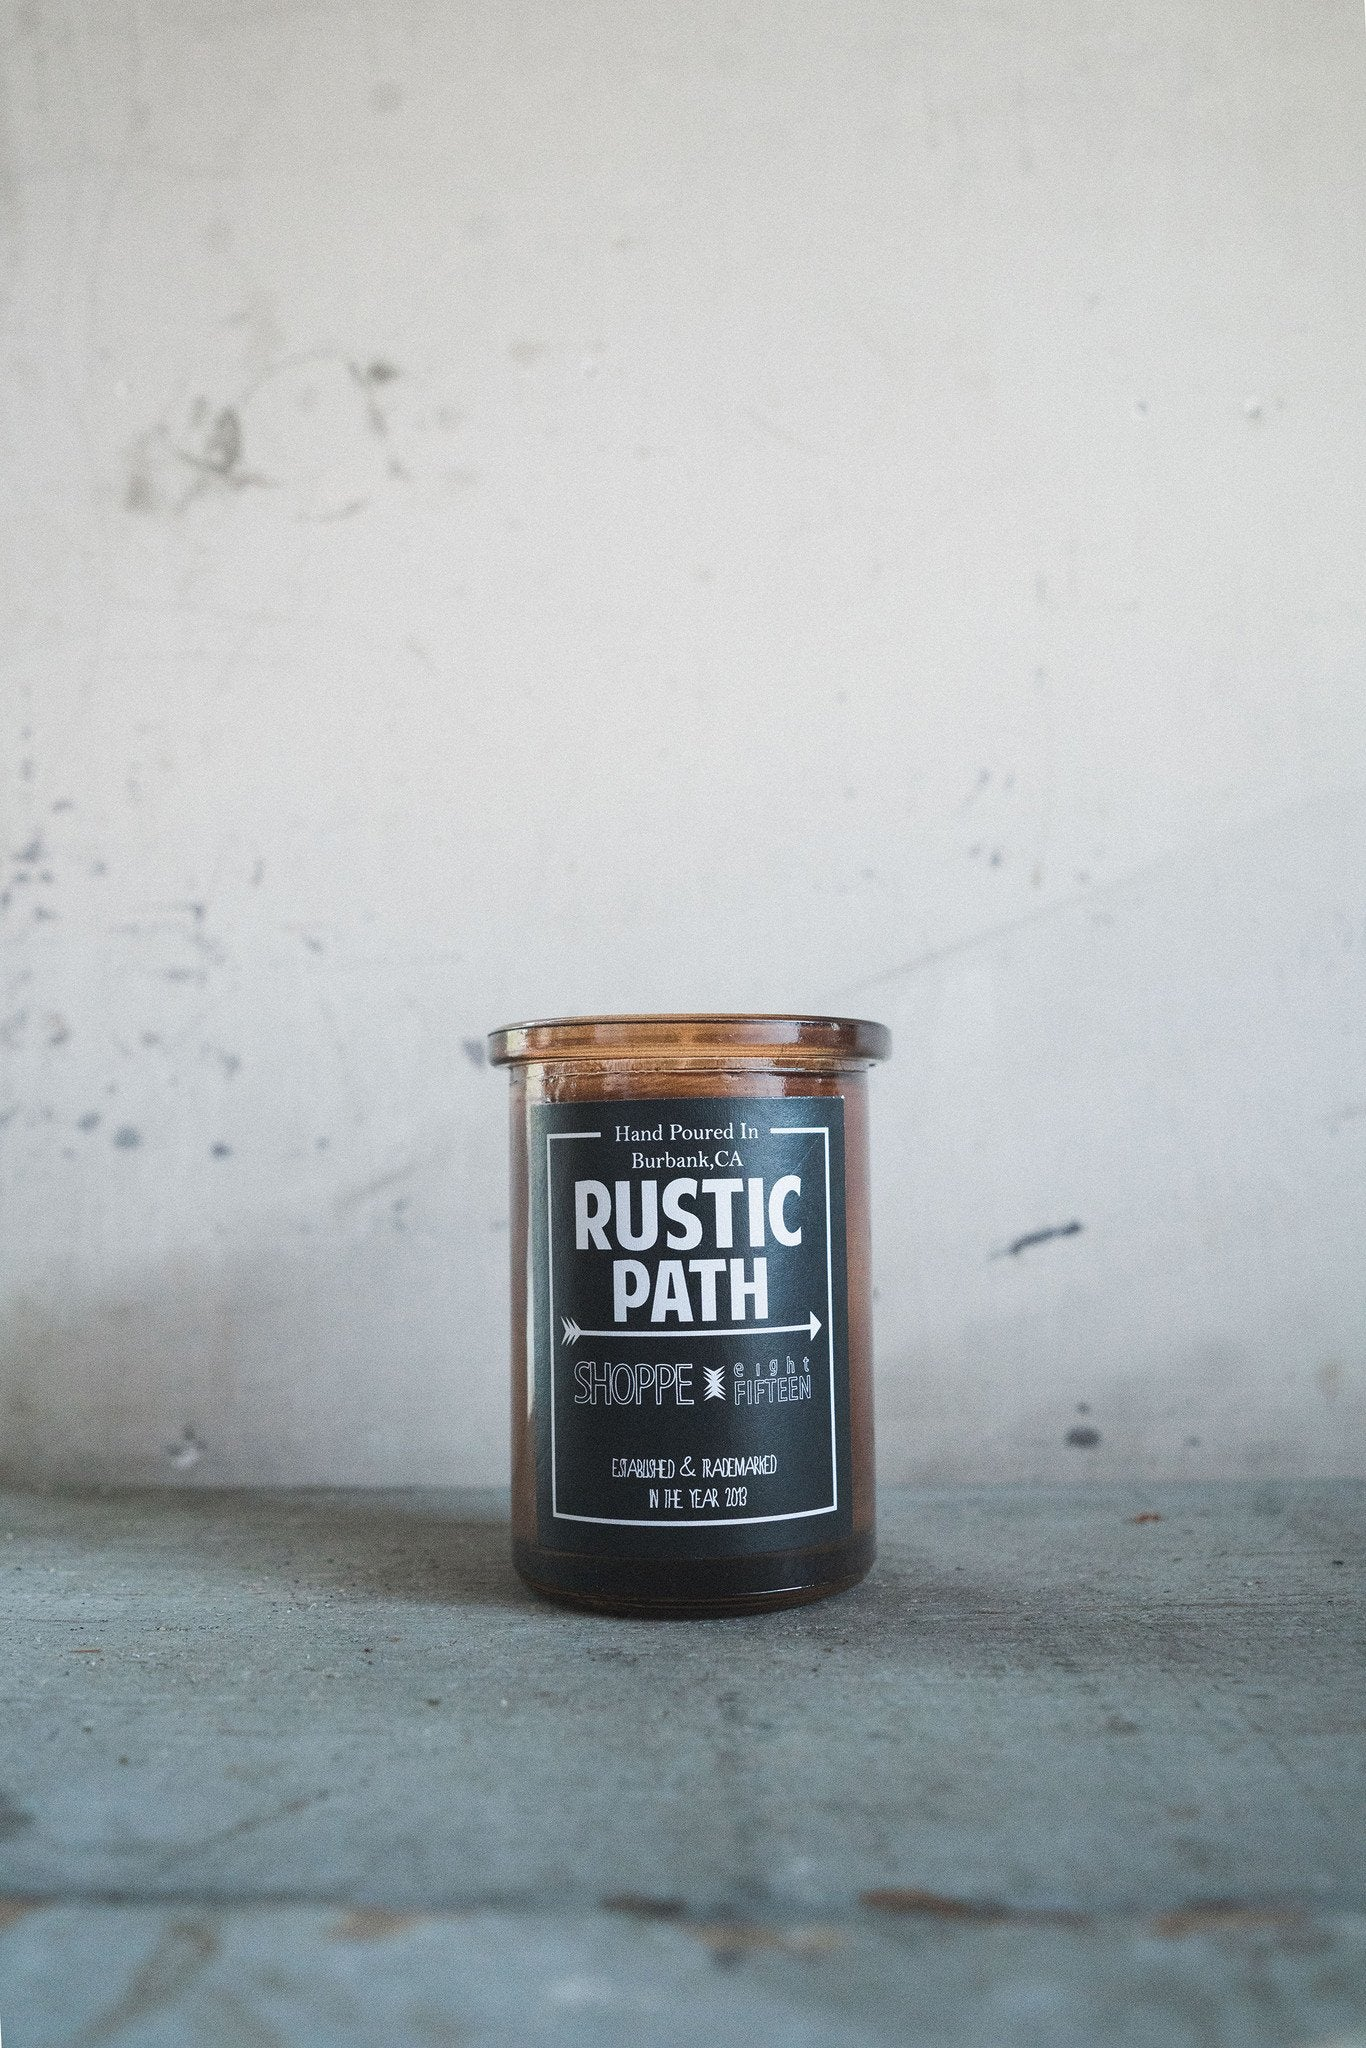 Rustic Path Candle